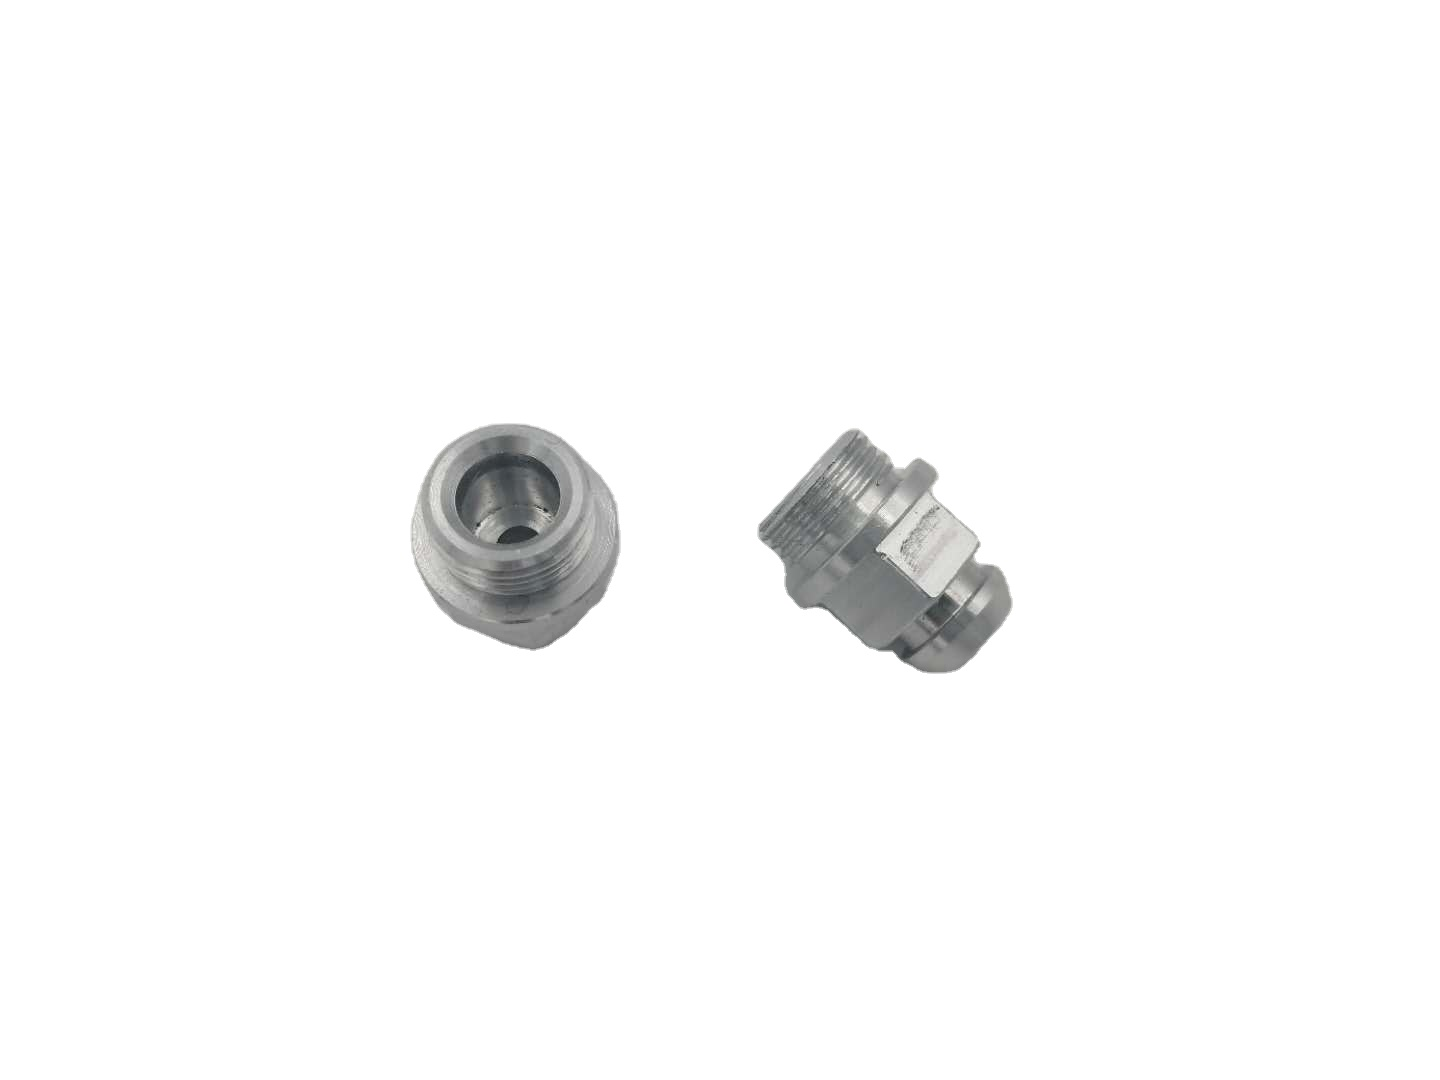 stainless steel safety cap hardware thread investment casting and cnc machining